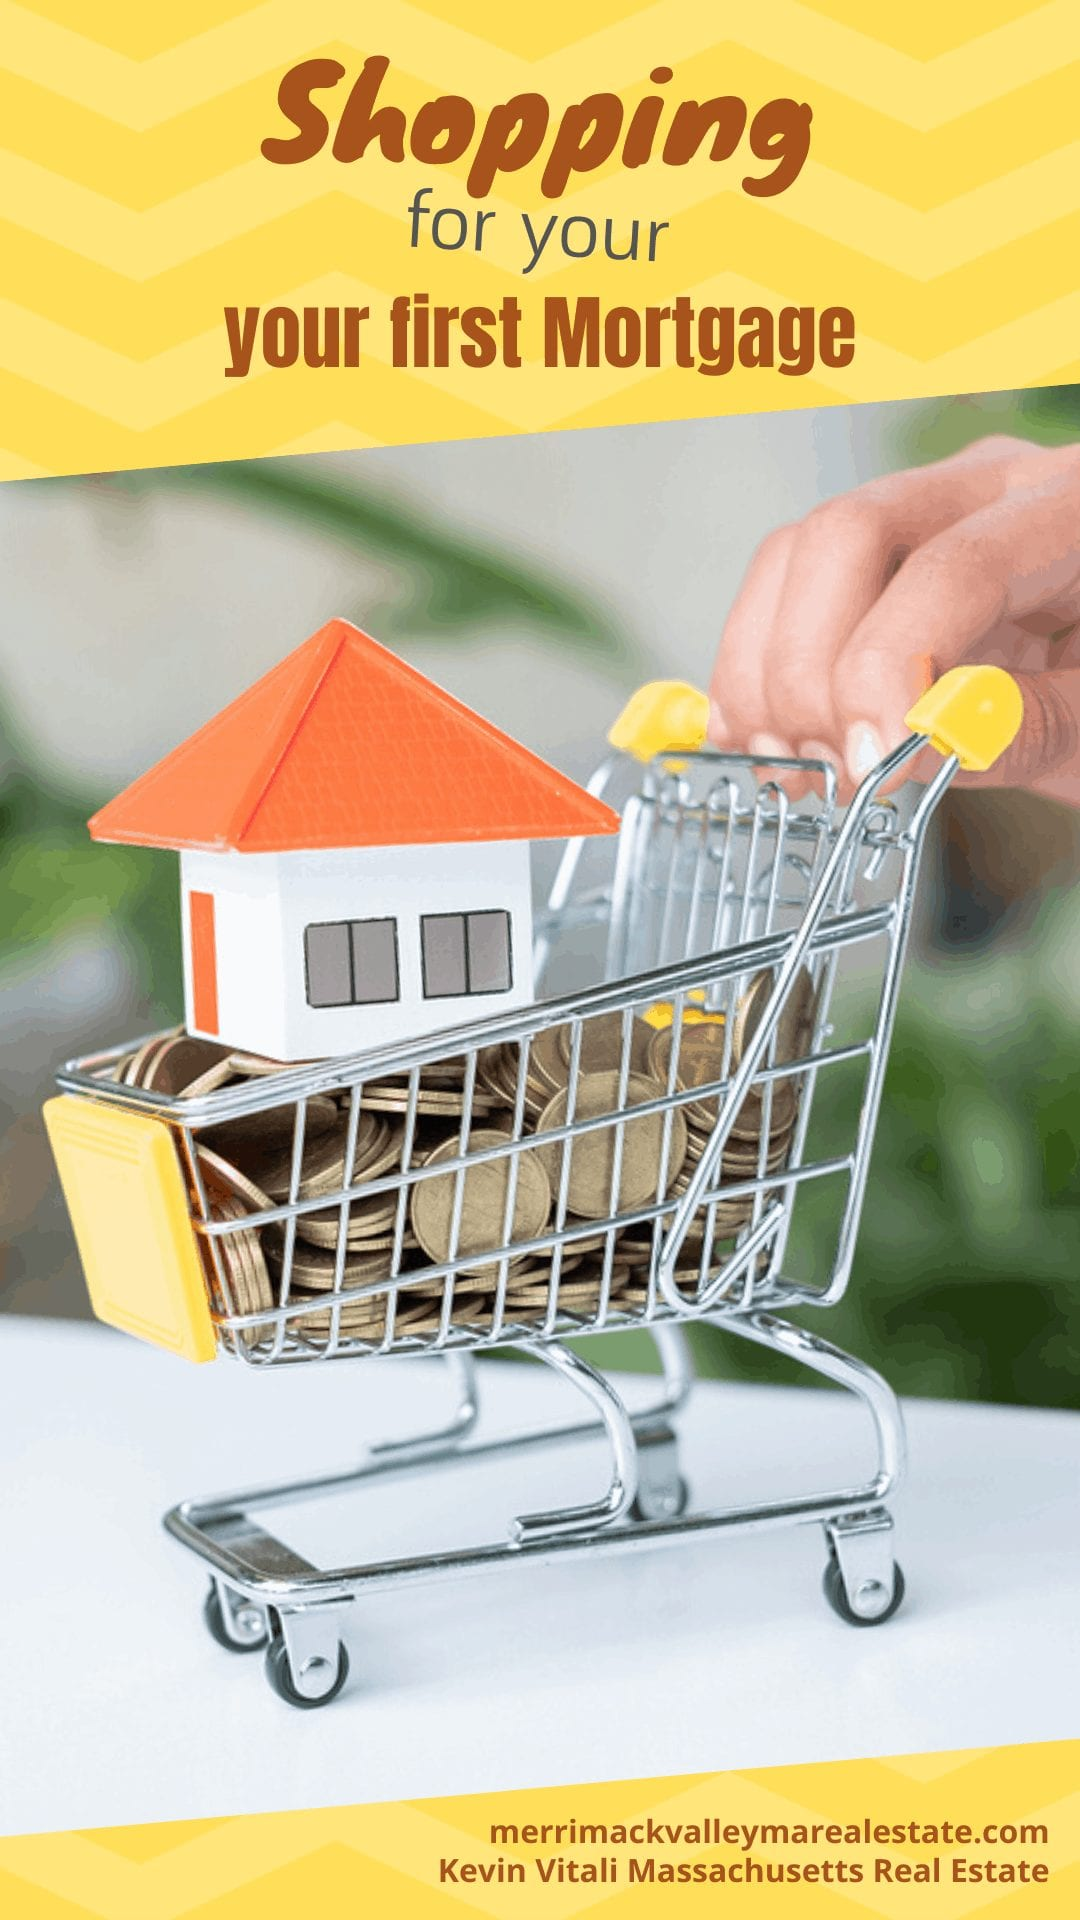 shopping for a mortgage- Advice from a Masschusetts Buyer's Agent